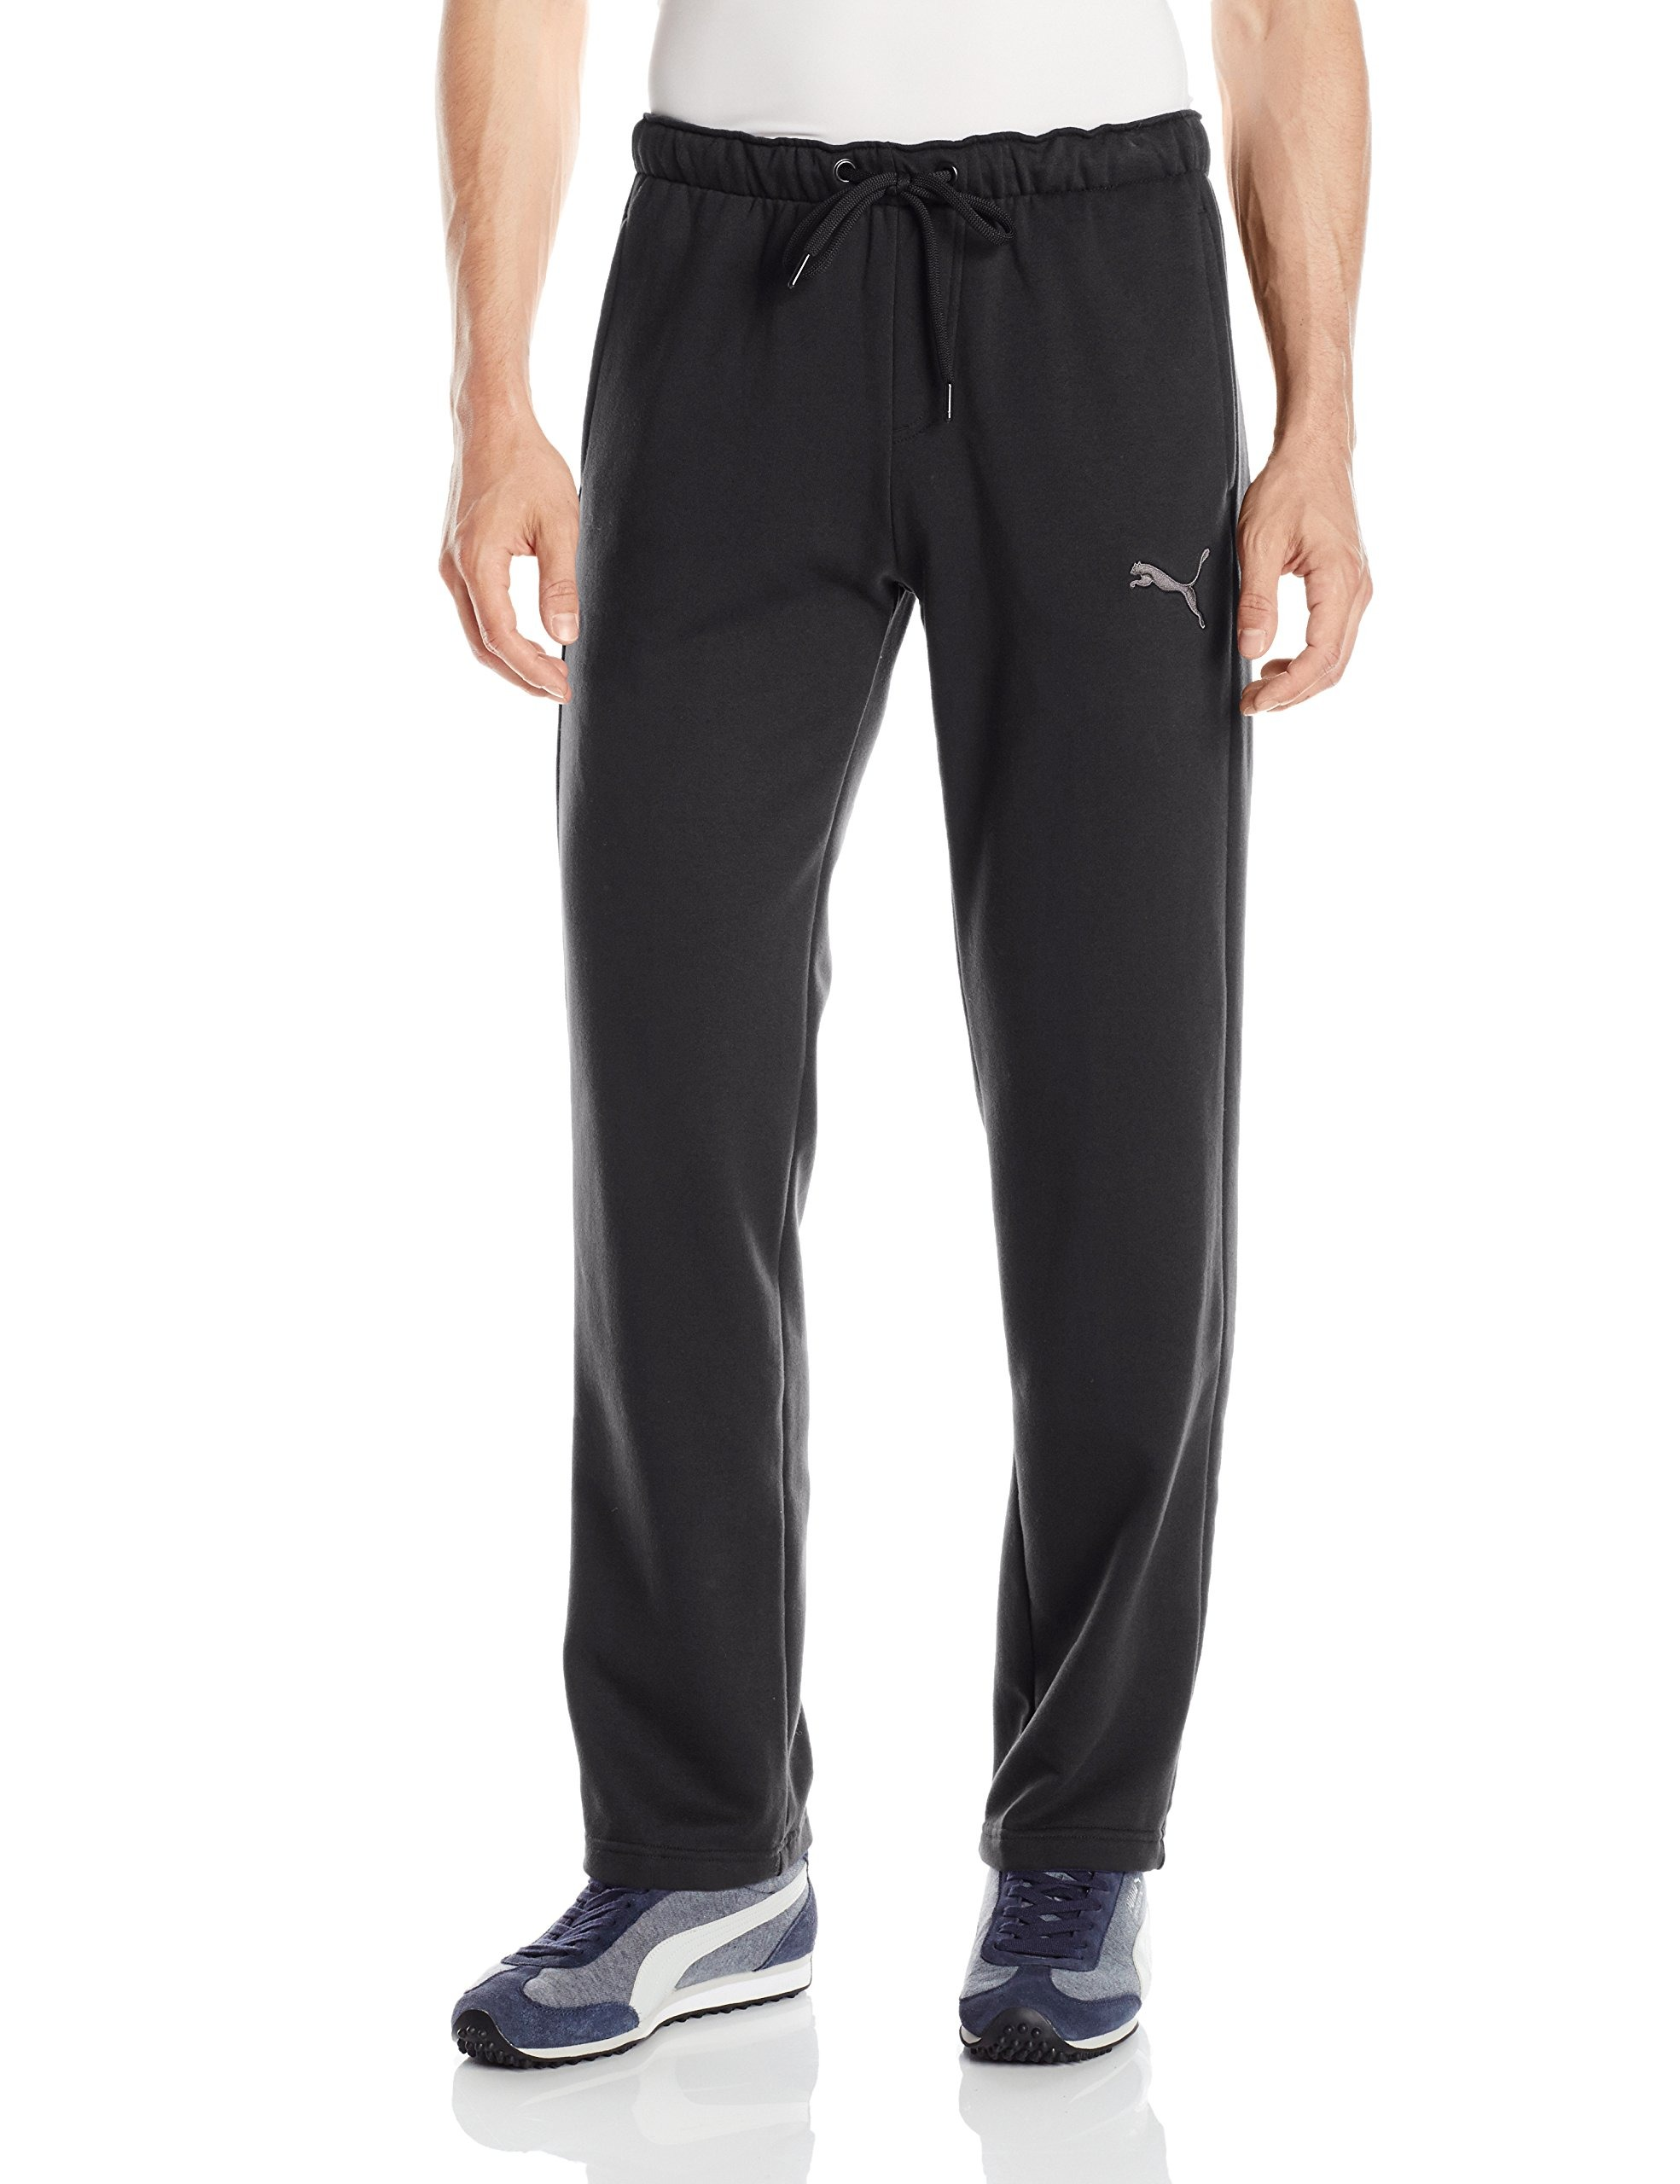 b46dd9726 Details about Puma NEW Black Mens Size XS Jogging Pull-On P48 Core Fleece  Pants  45 882